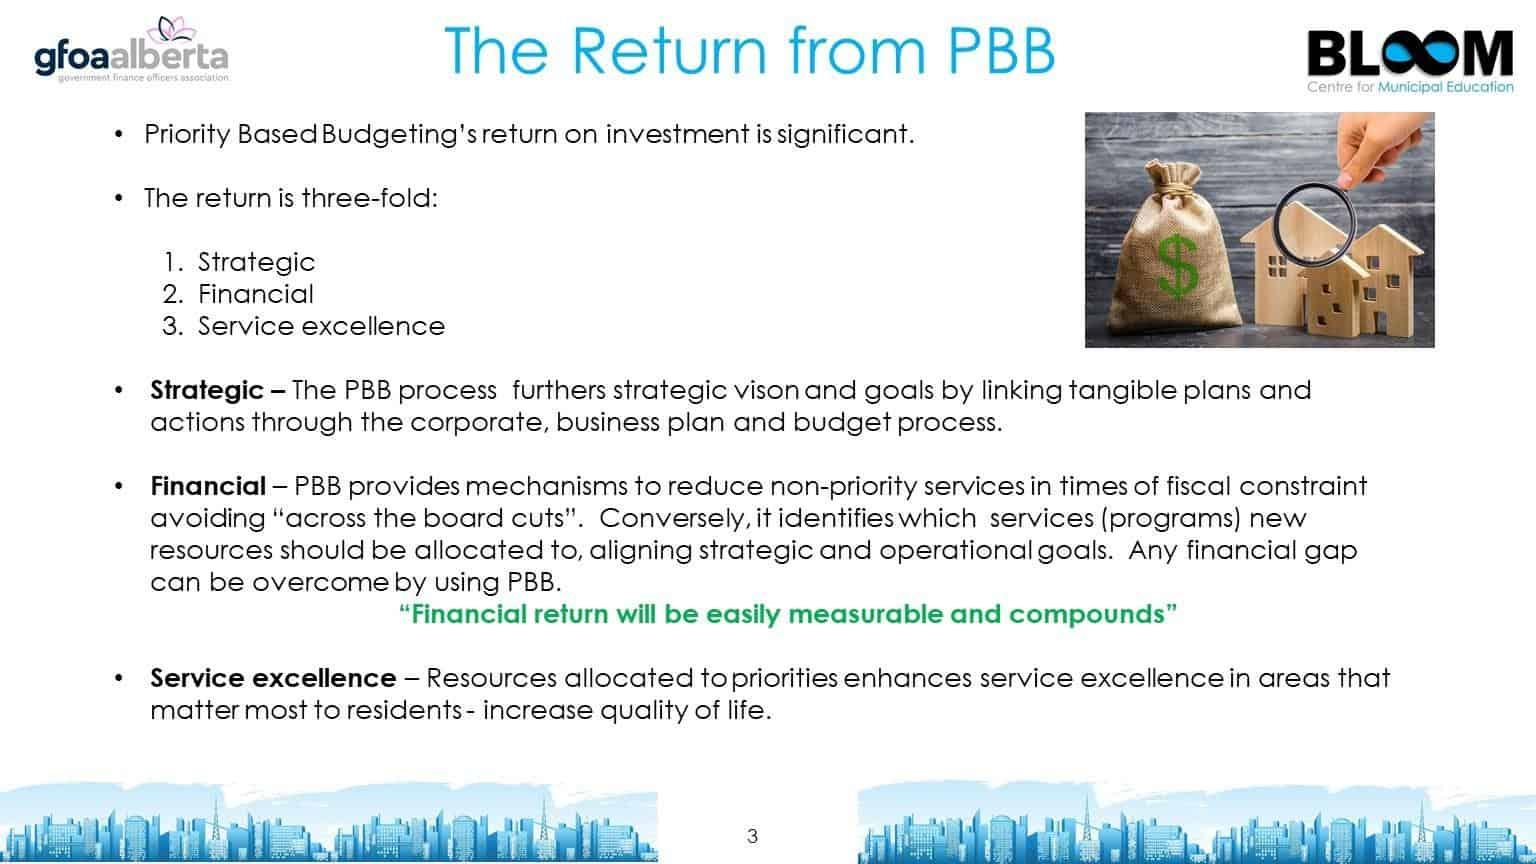 The return from priority based budgeting